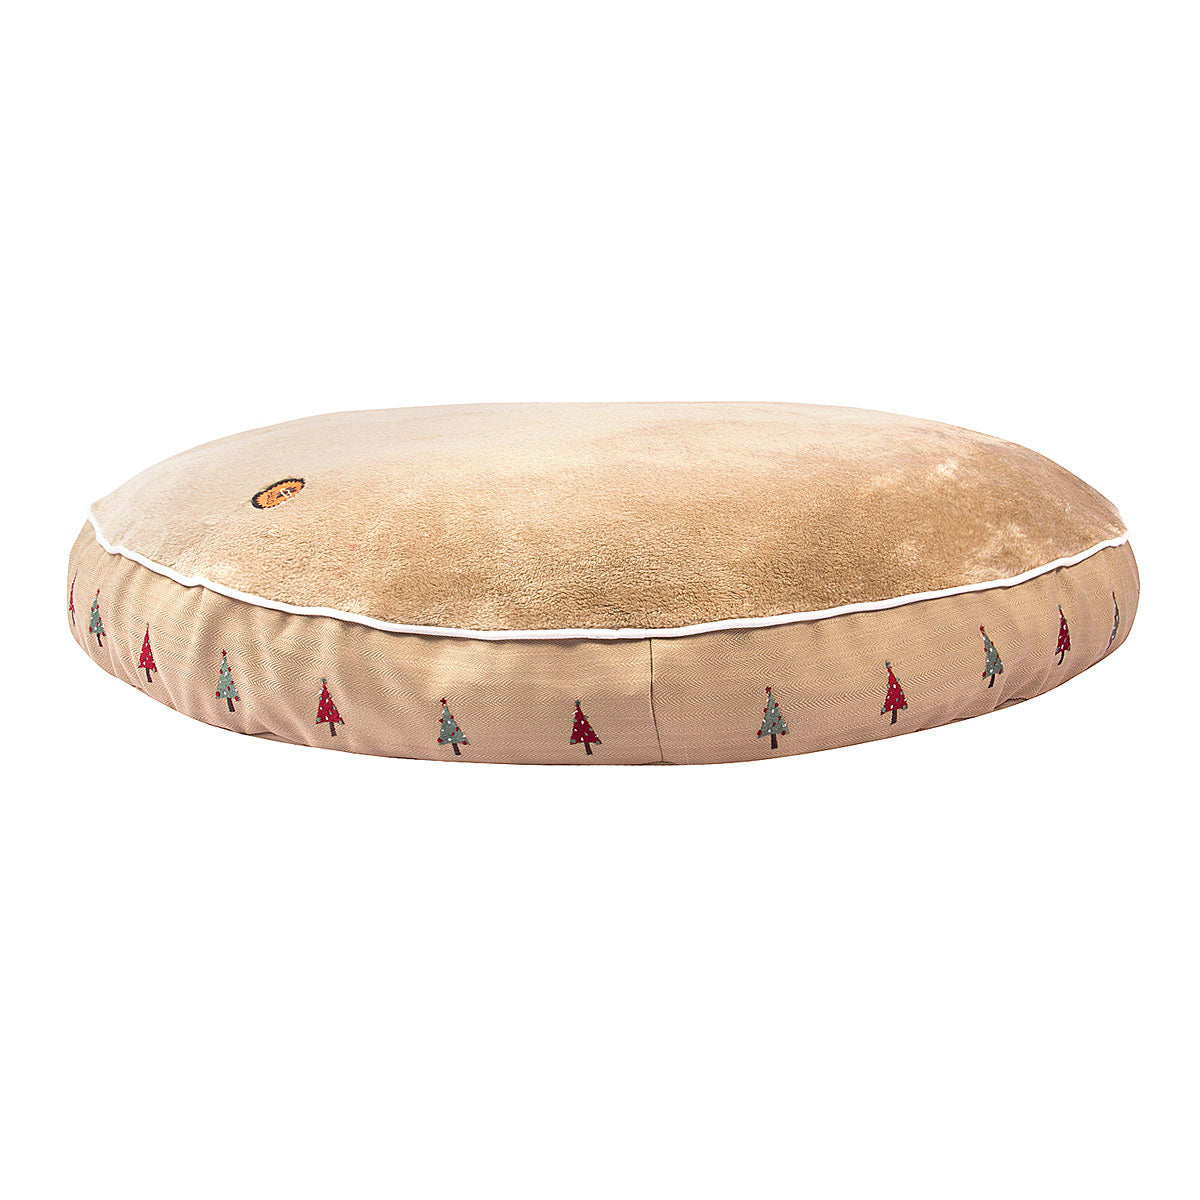 Halo Christmas Tree Round Dog Bed_2807